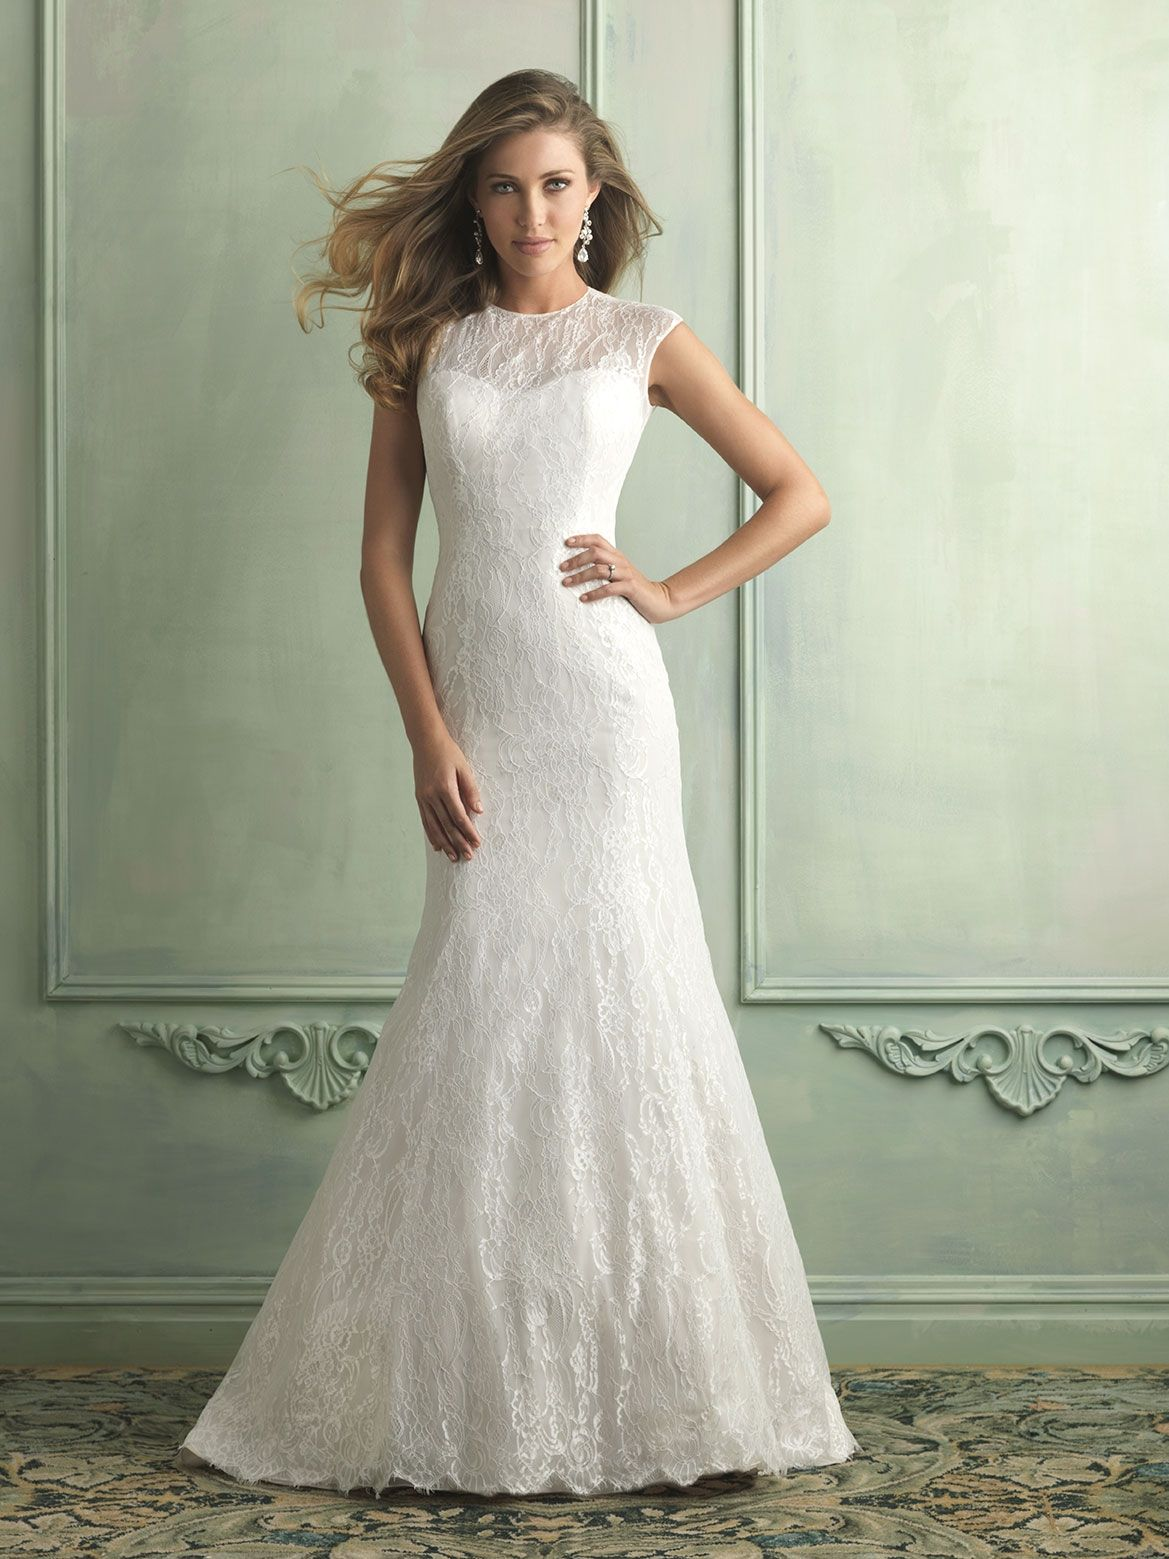 Allure Bridals » Style: 9119 » http://www.allurebridals.com/products/9119